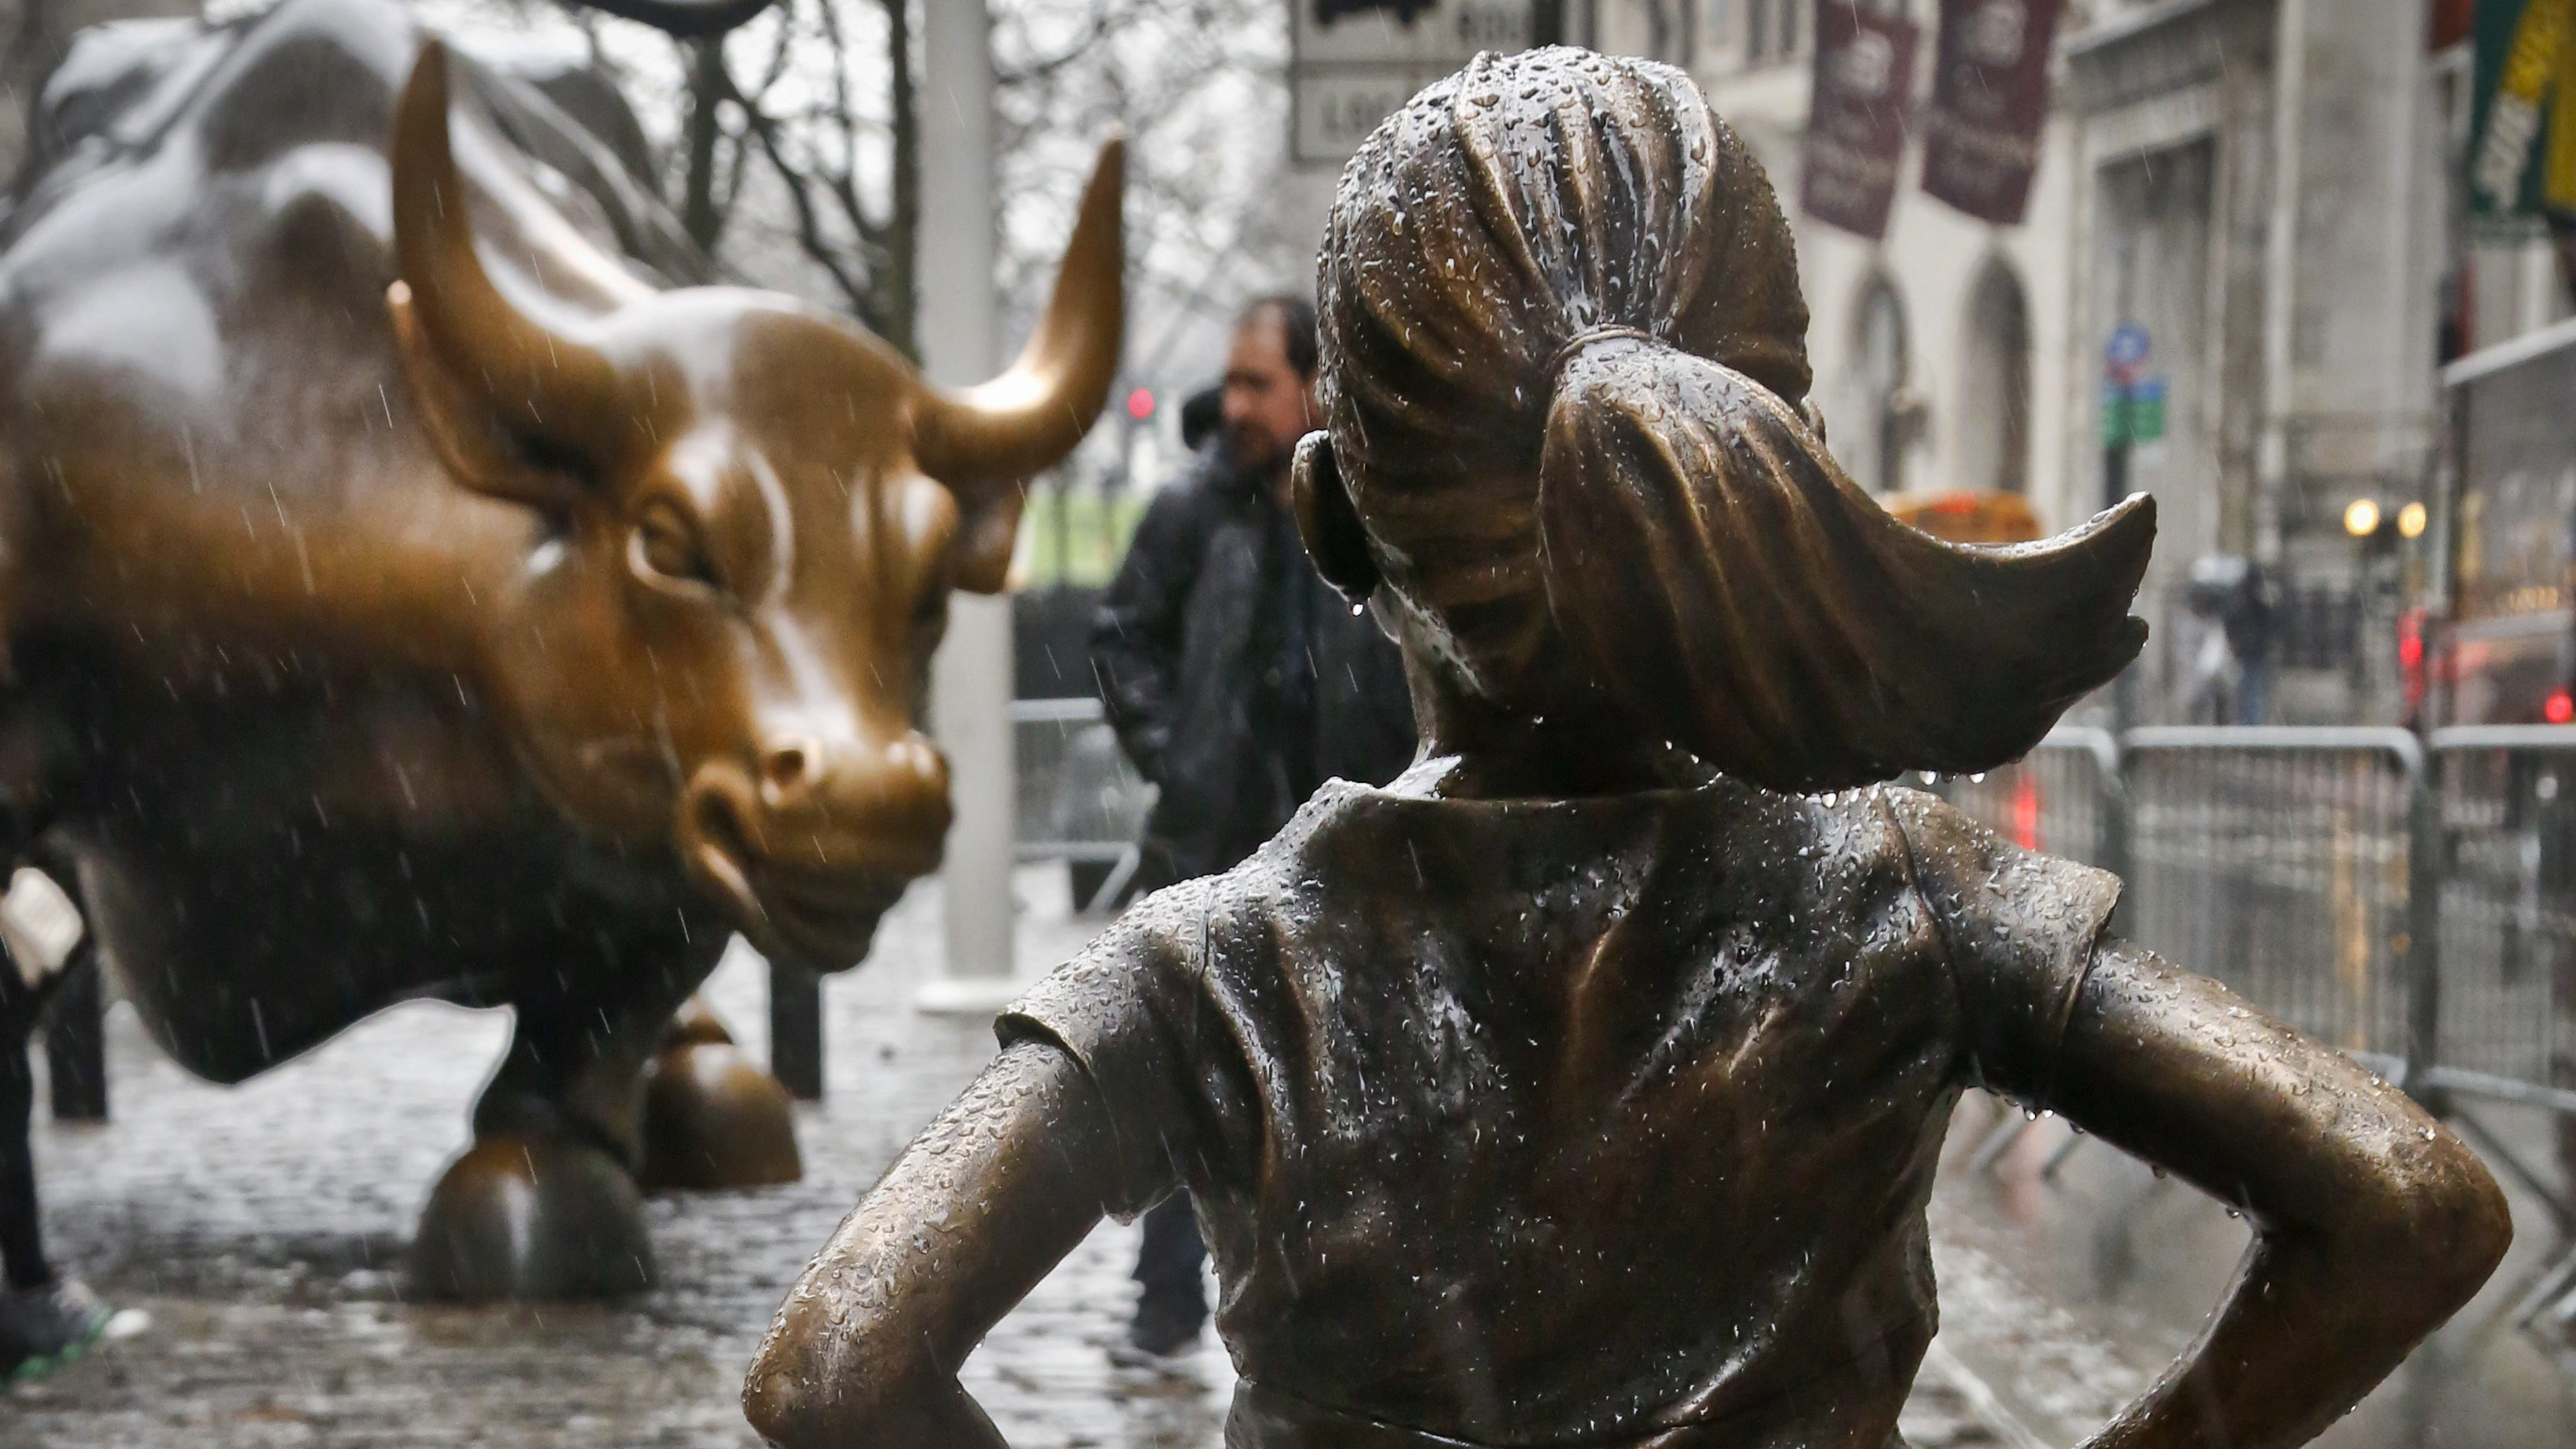 """The """"Fearless Girl"""" statue, created by Kristen Visbal, stands across from the """"Charging Bull"""" statue, Monday, March 27, 2017, in New York. Mayor Bill de Blasio says the popular statue of a young girl will be allowed to remain through February 2018. (AP Photo/Bebeto Matthews)"""